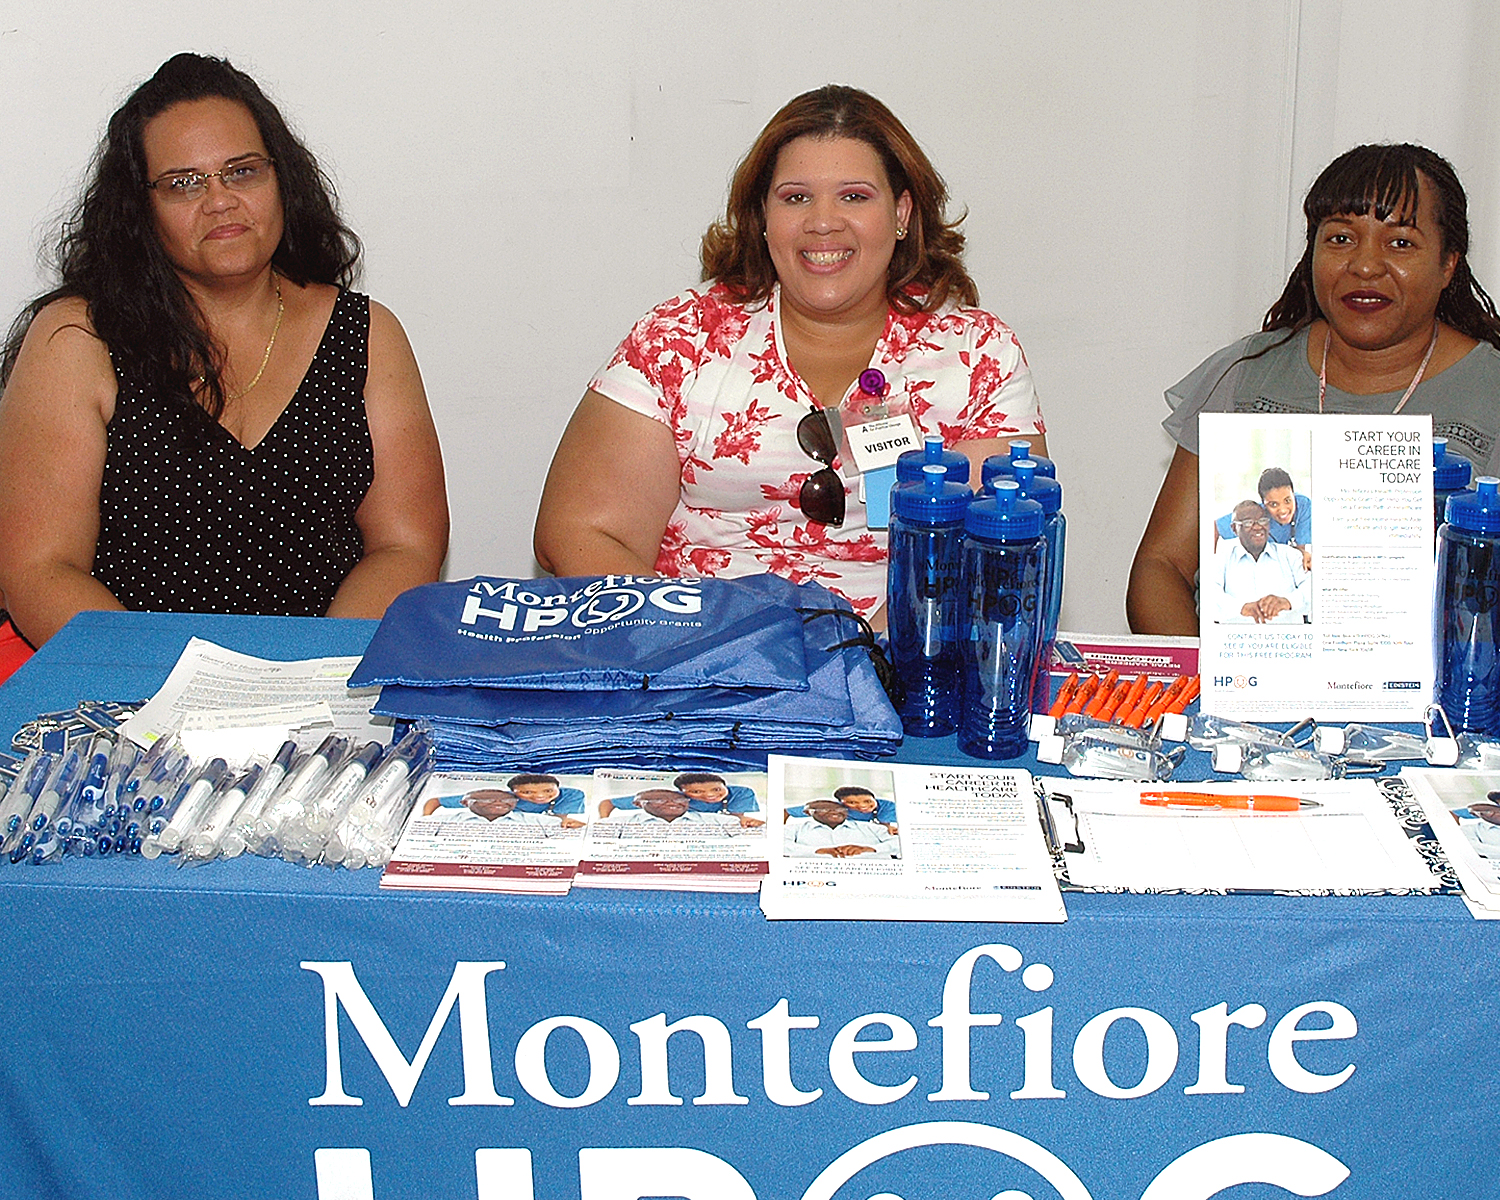 Three interviewers from Montefiore Hospital